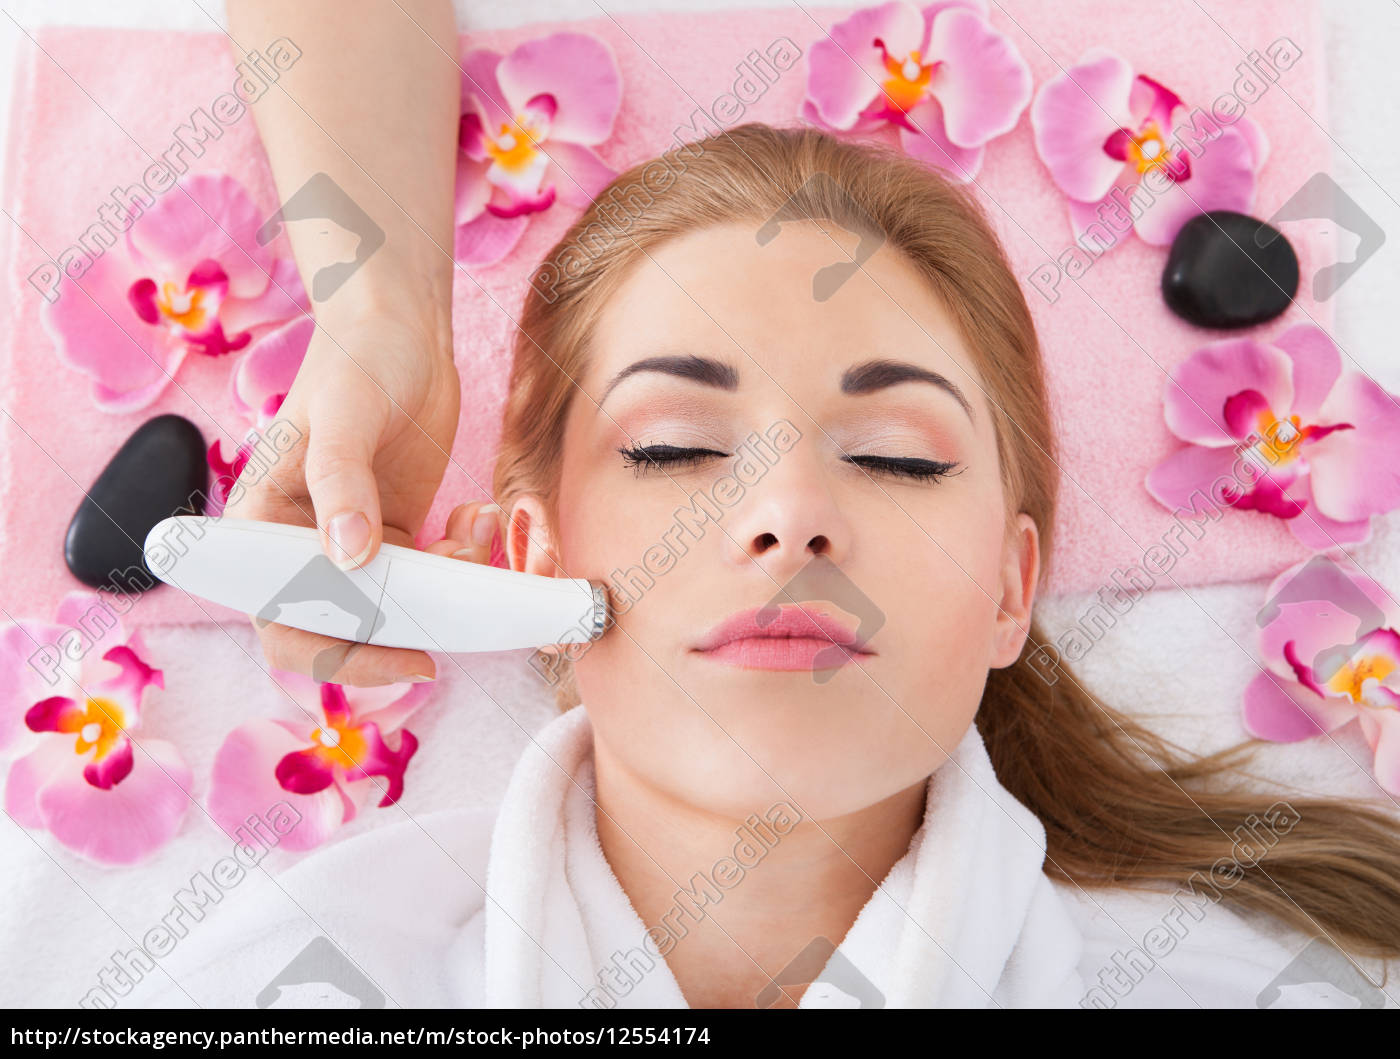 woman, getting, microdermabrasion, treatment - 12554174